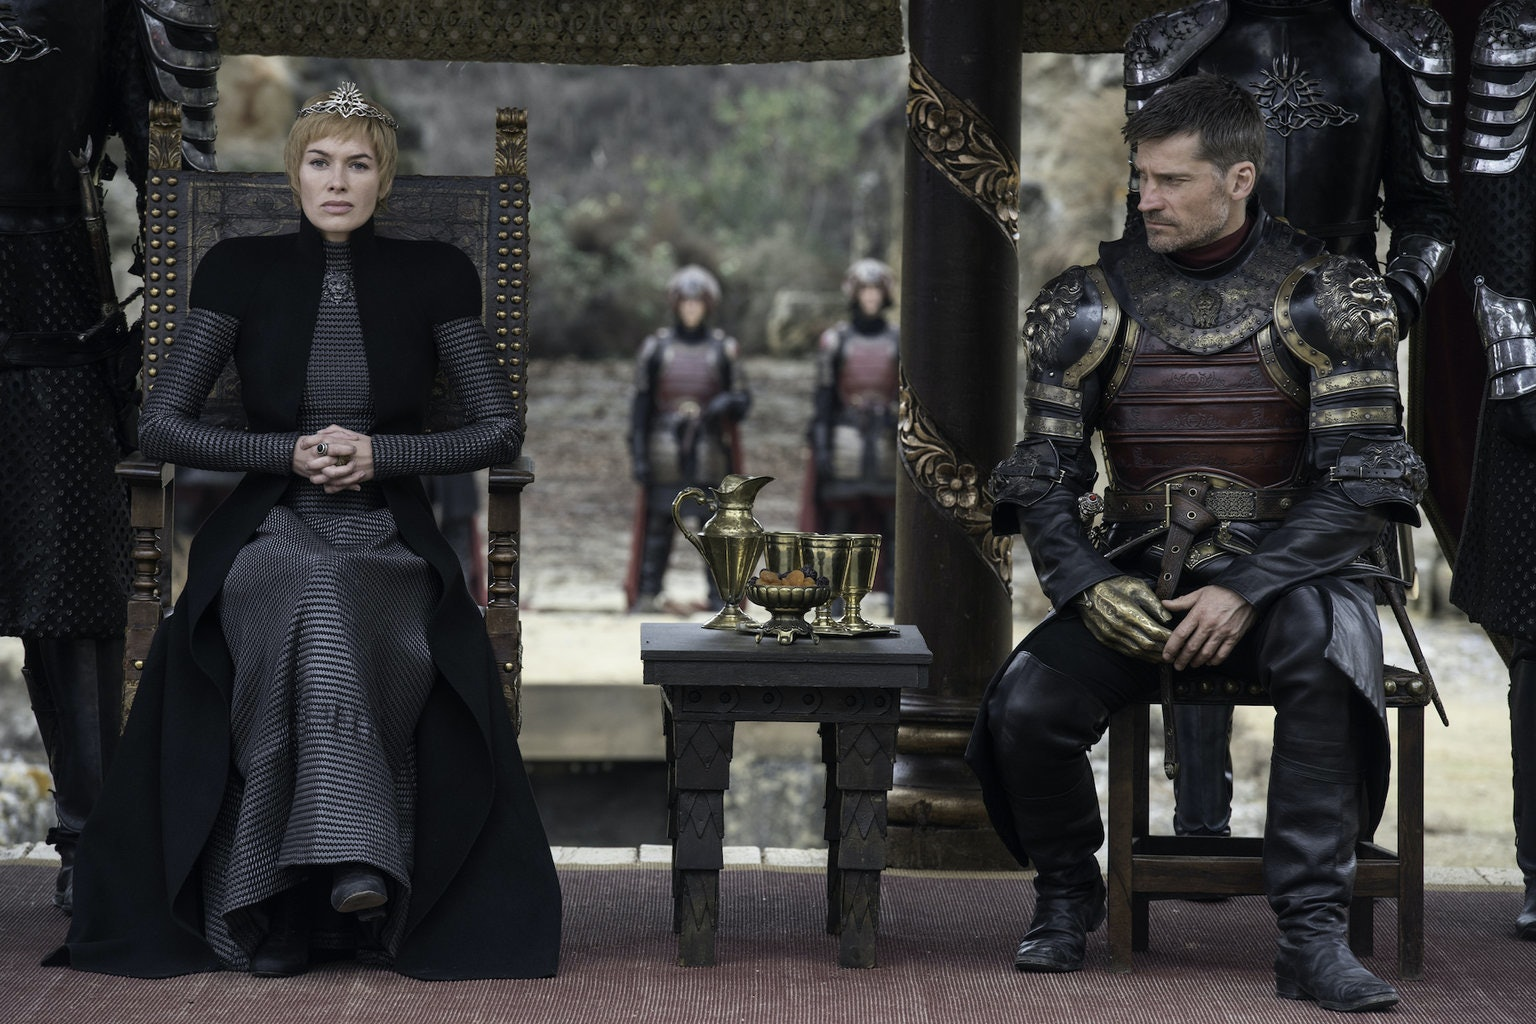 Jaime's look towards Cersei says it all. The twincest lovers are done for.